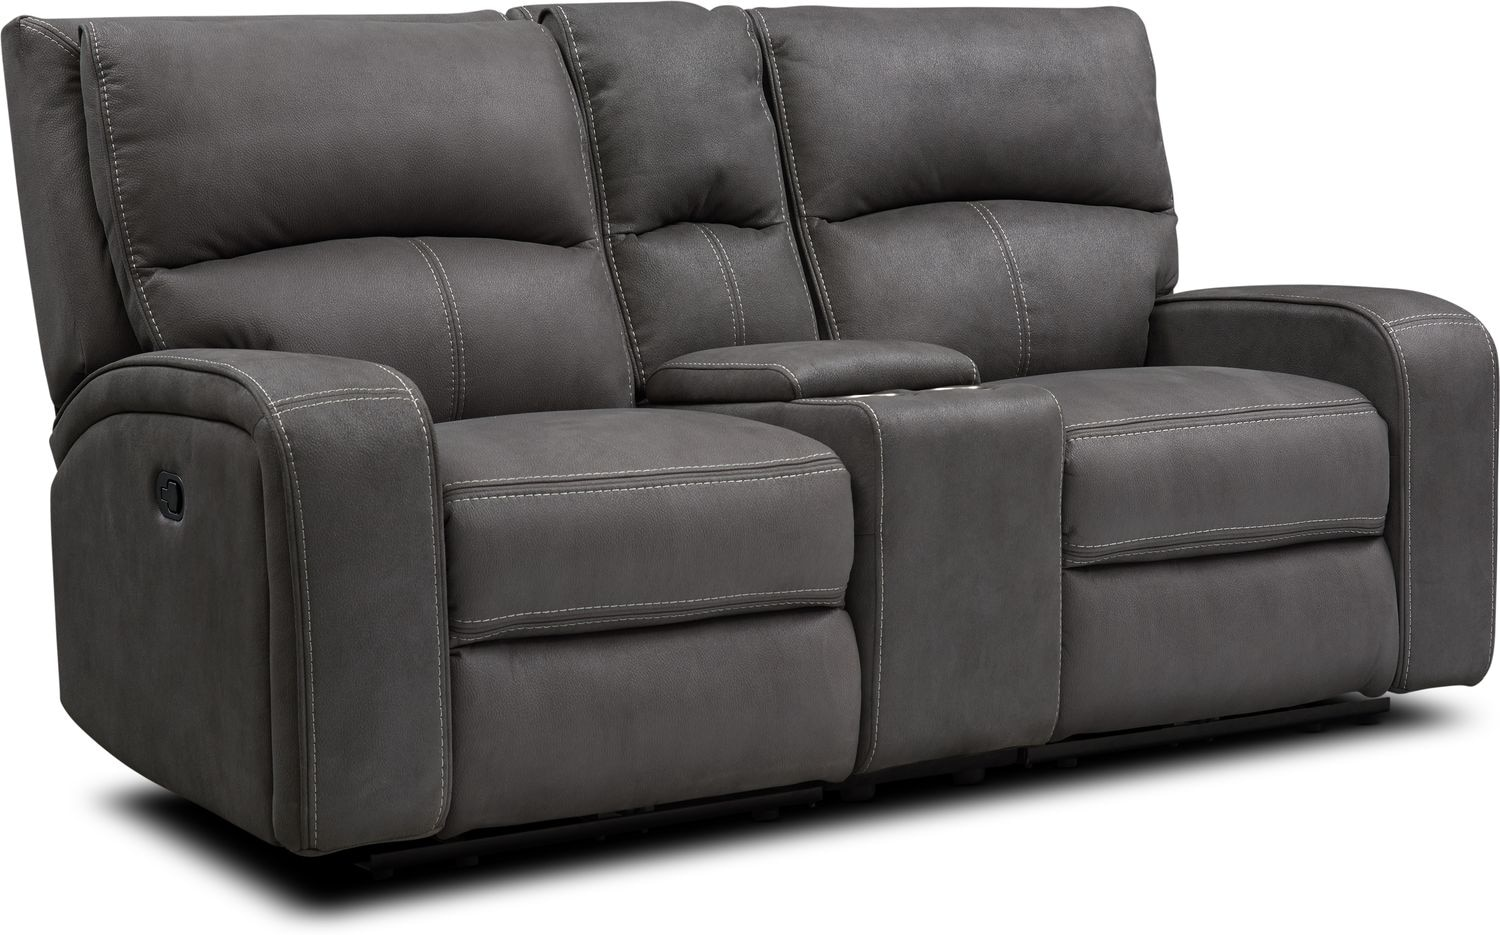 Groovy Burke Manual Reclining Loveseat With Console Frankydiablos Diy Chair Ideas Frankydiabloscom